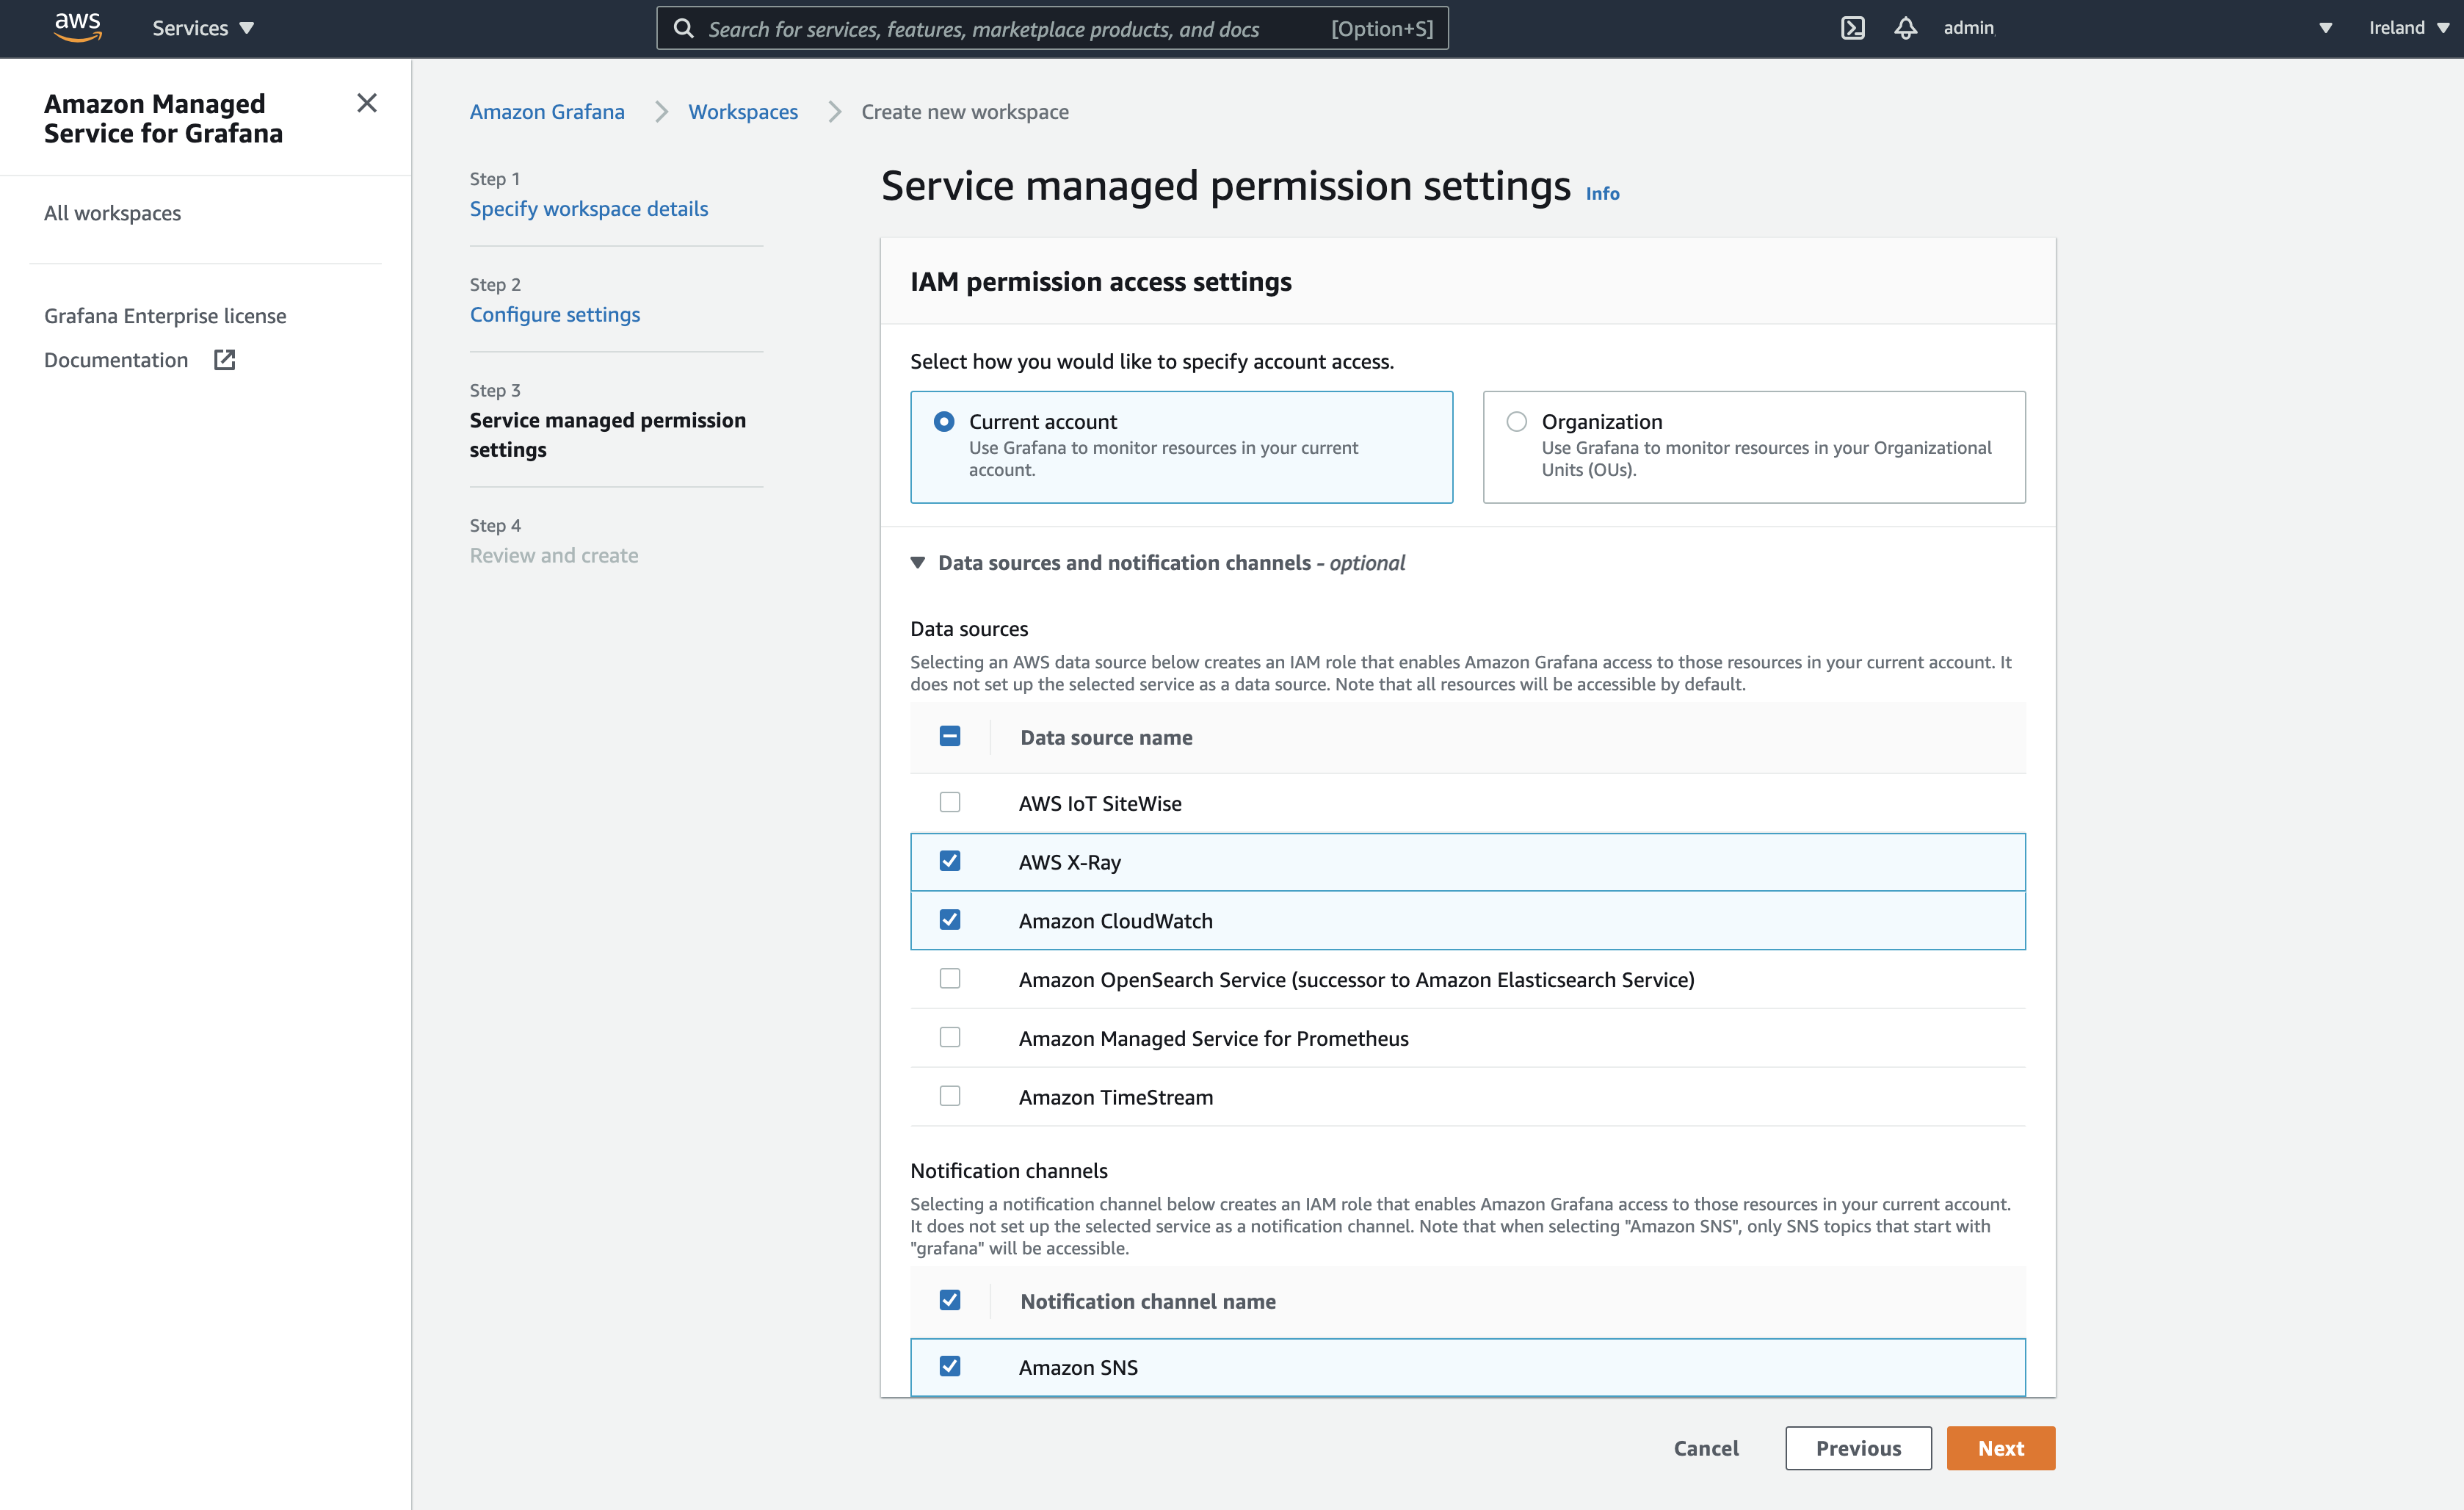 Service managed permission settings displays two options for specifying account access: Current account and Organization). Under Data sources, AWS IoT SiteWise, AWS X-Ray, Amazon CloudWatch, Amazon TimeStream, and other AWS services are selected.